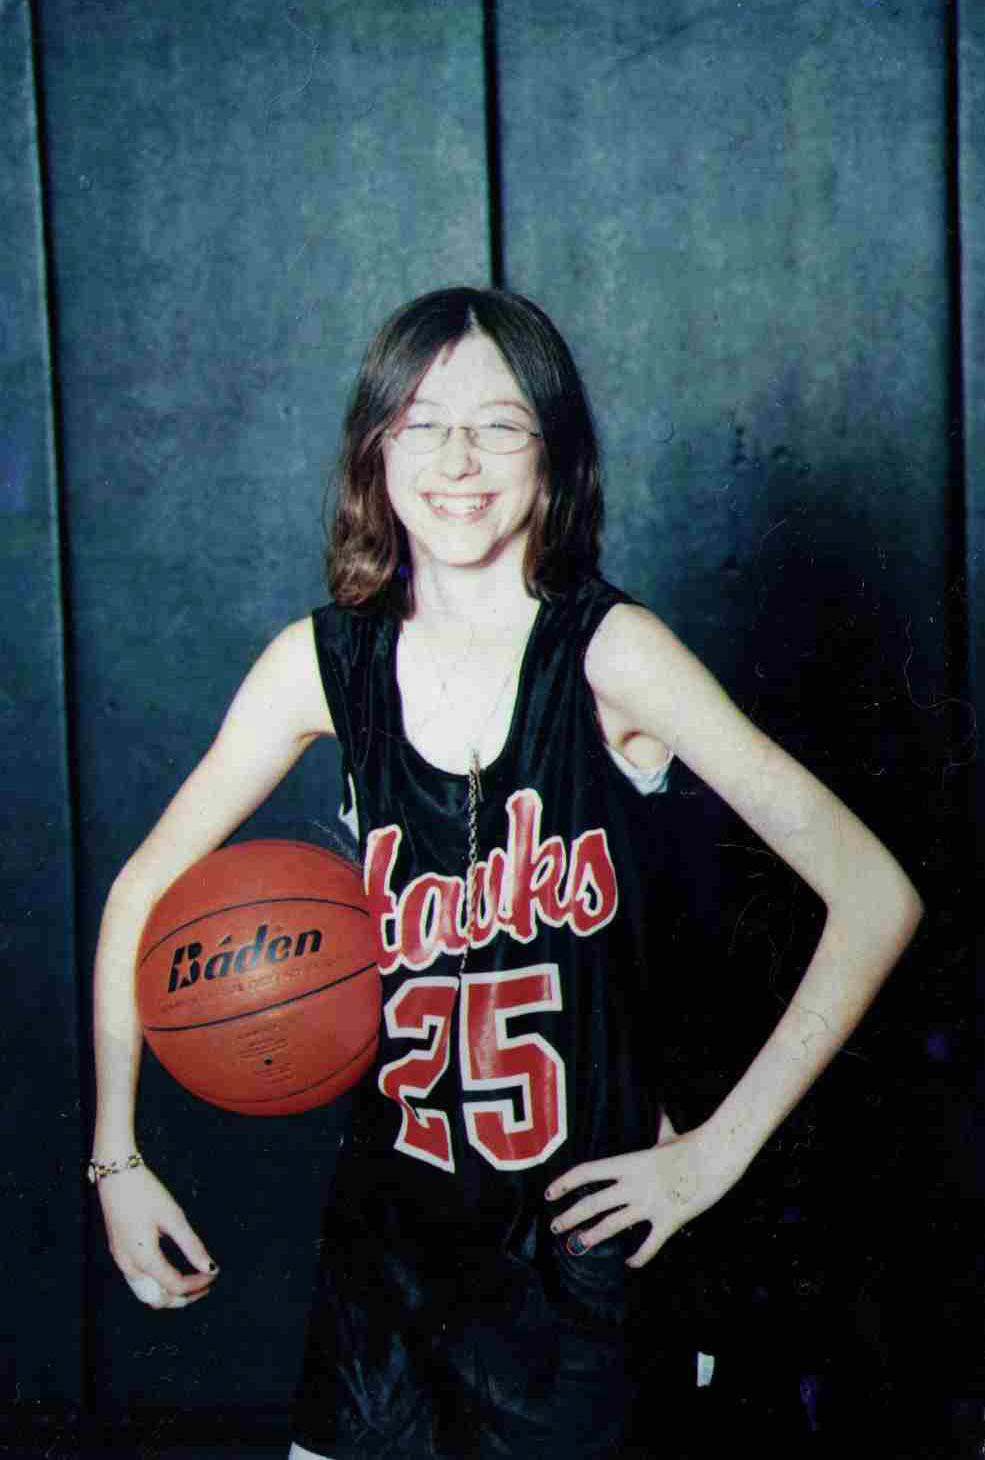 A photo of me from my youth, holding a basketball. My arms are extremely thin.